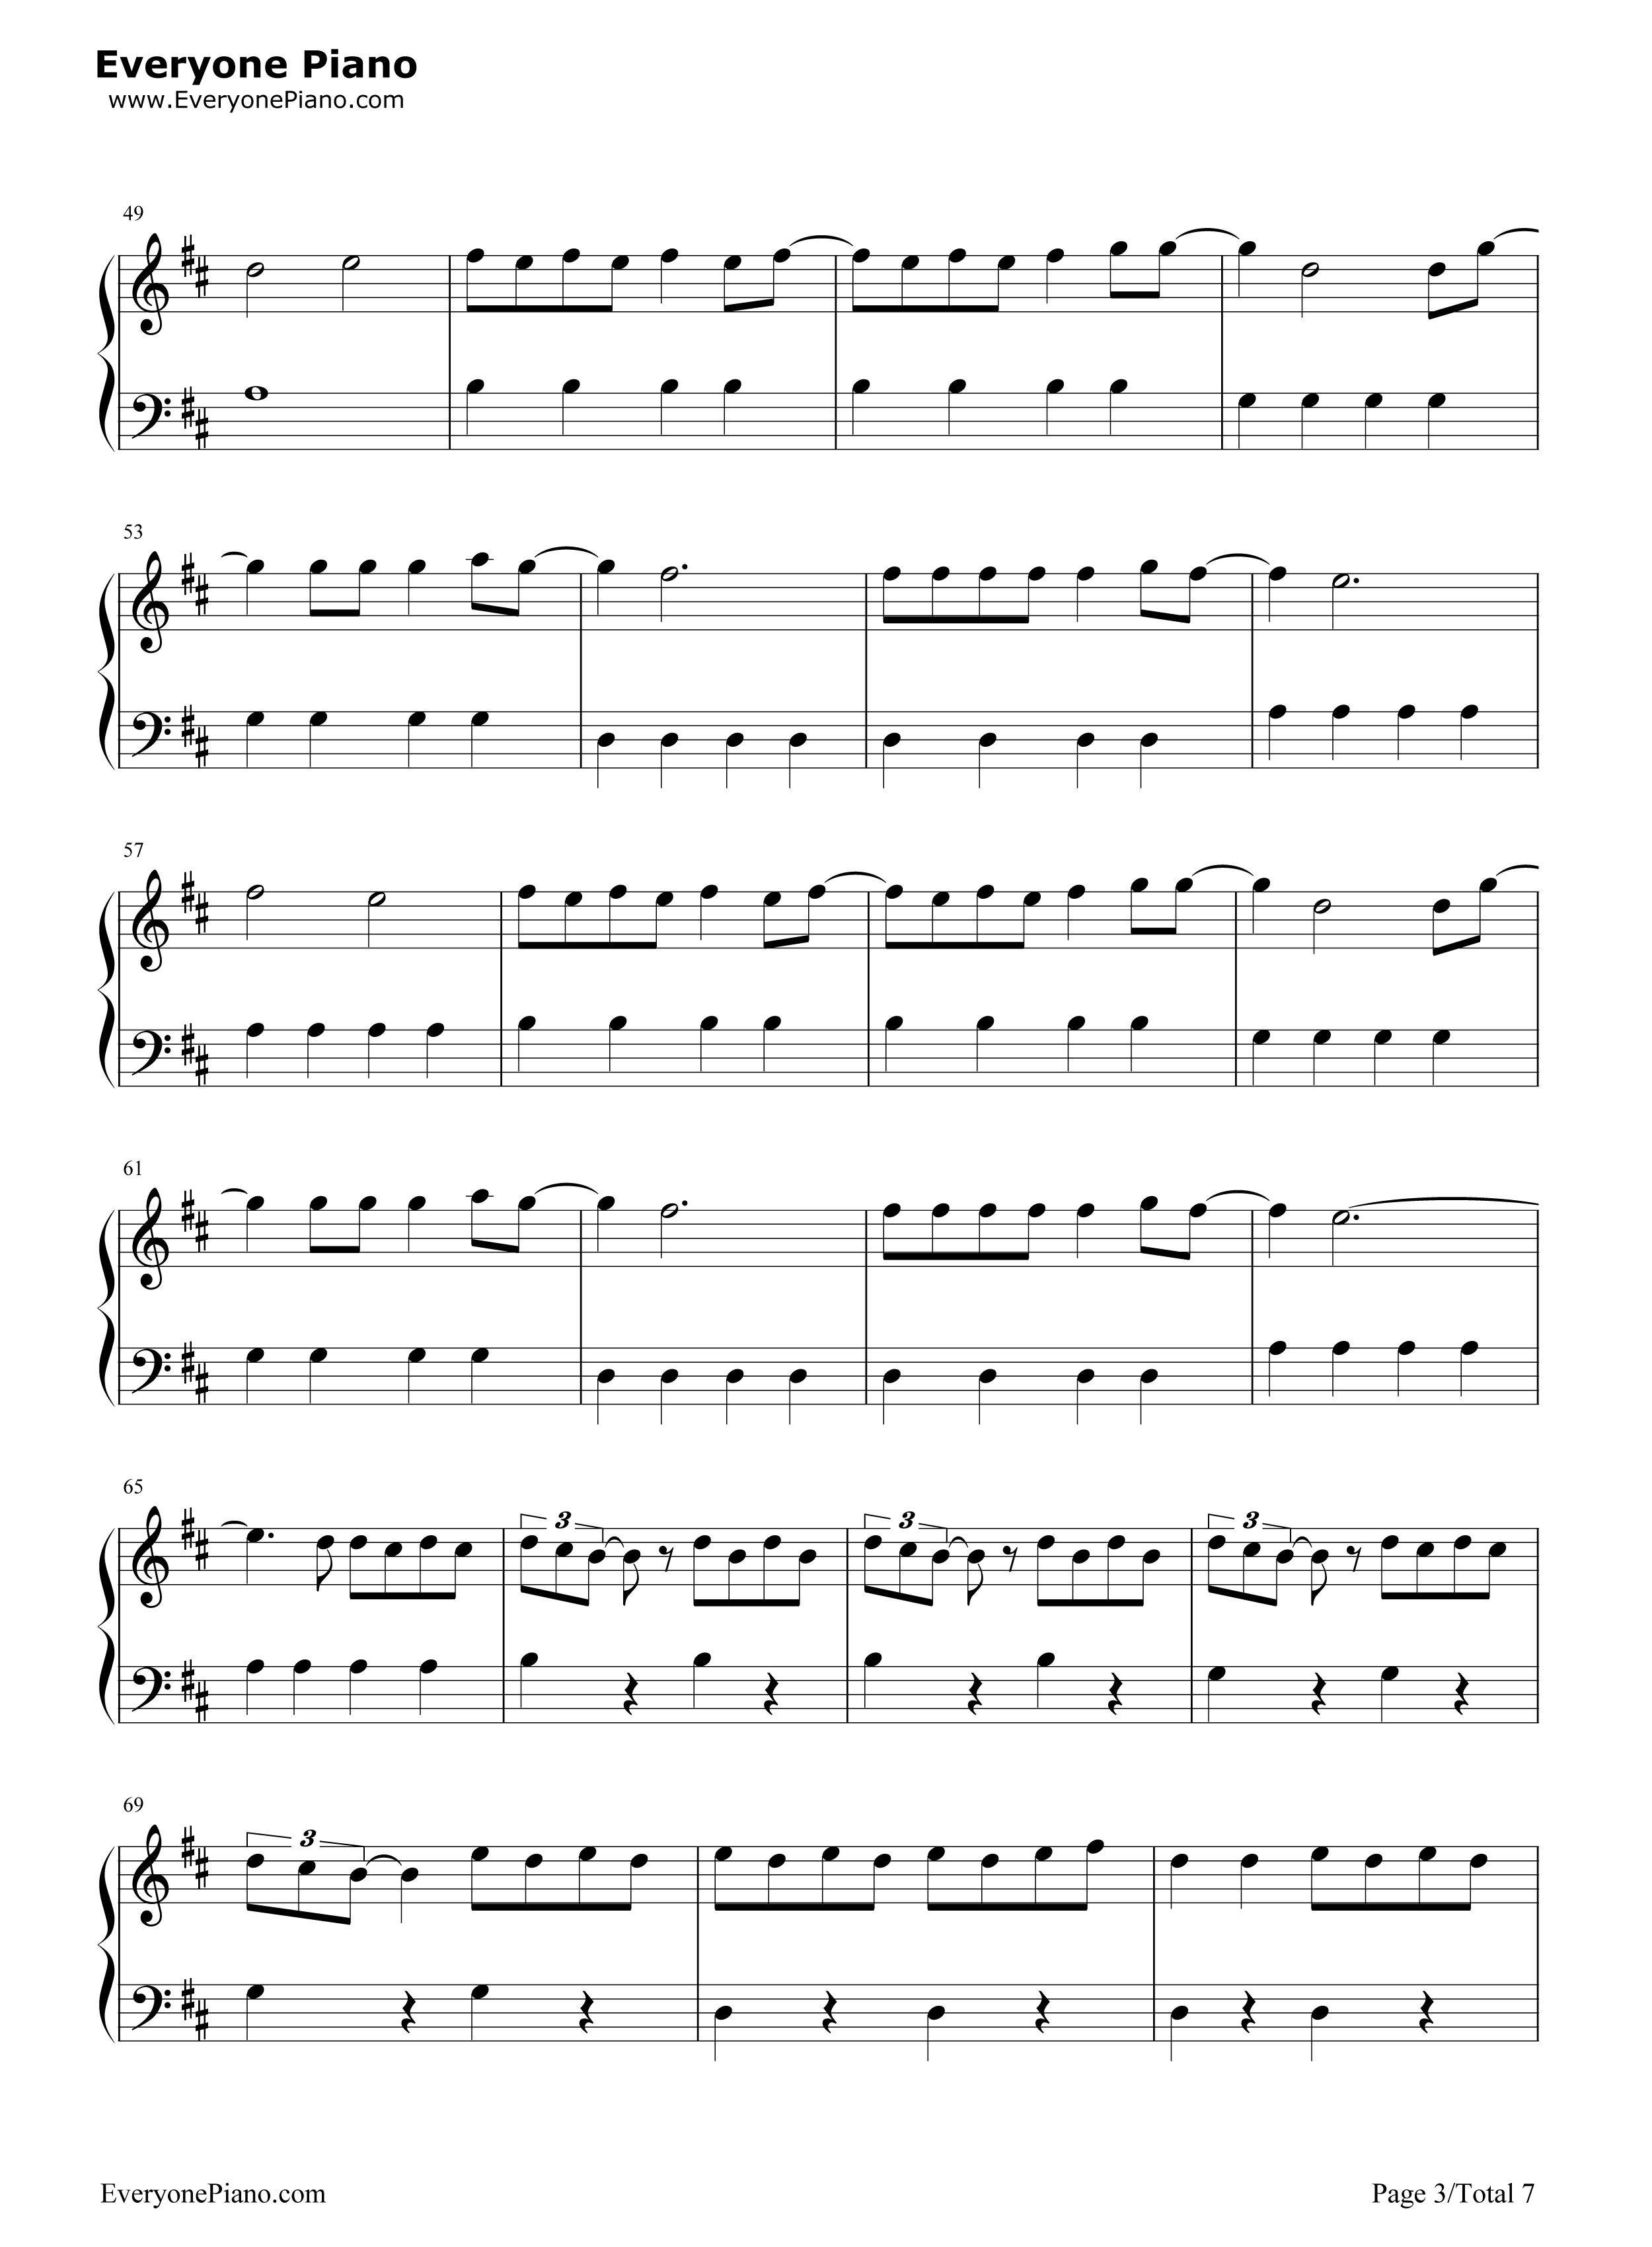 Image result for despacito piano sheet easy paiges piano image result for despacito piano sheet easy hexwebz Choice Image